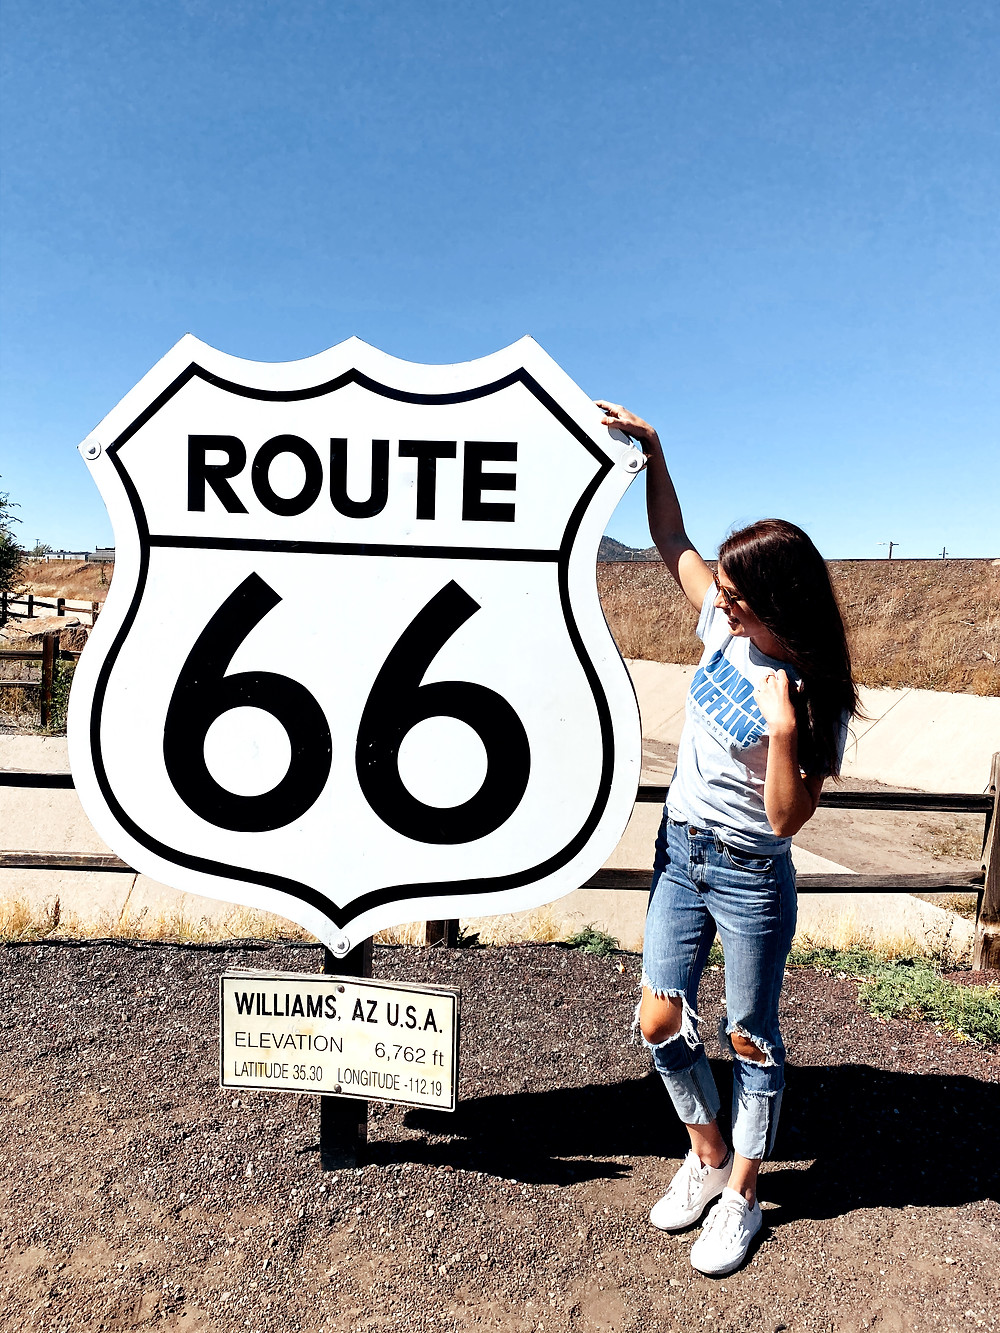 Kate posing with the Route 66 sign in Williams, Arizona